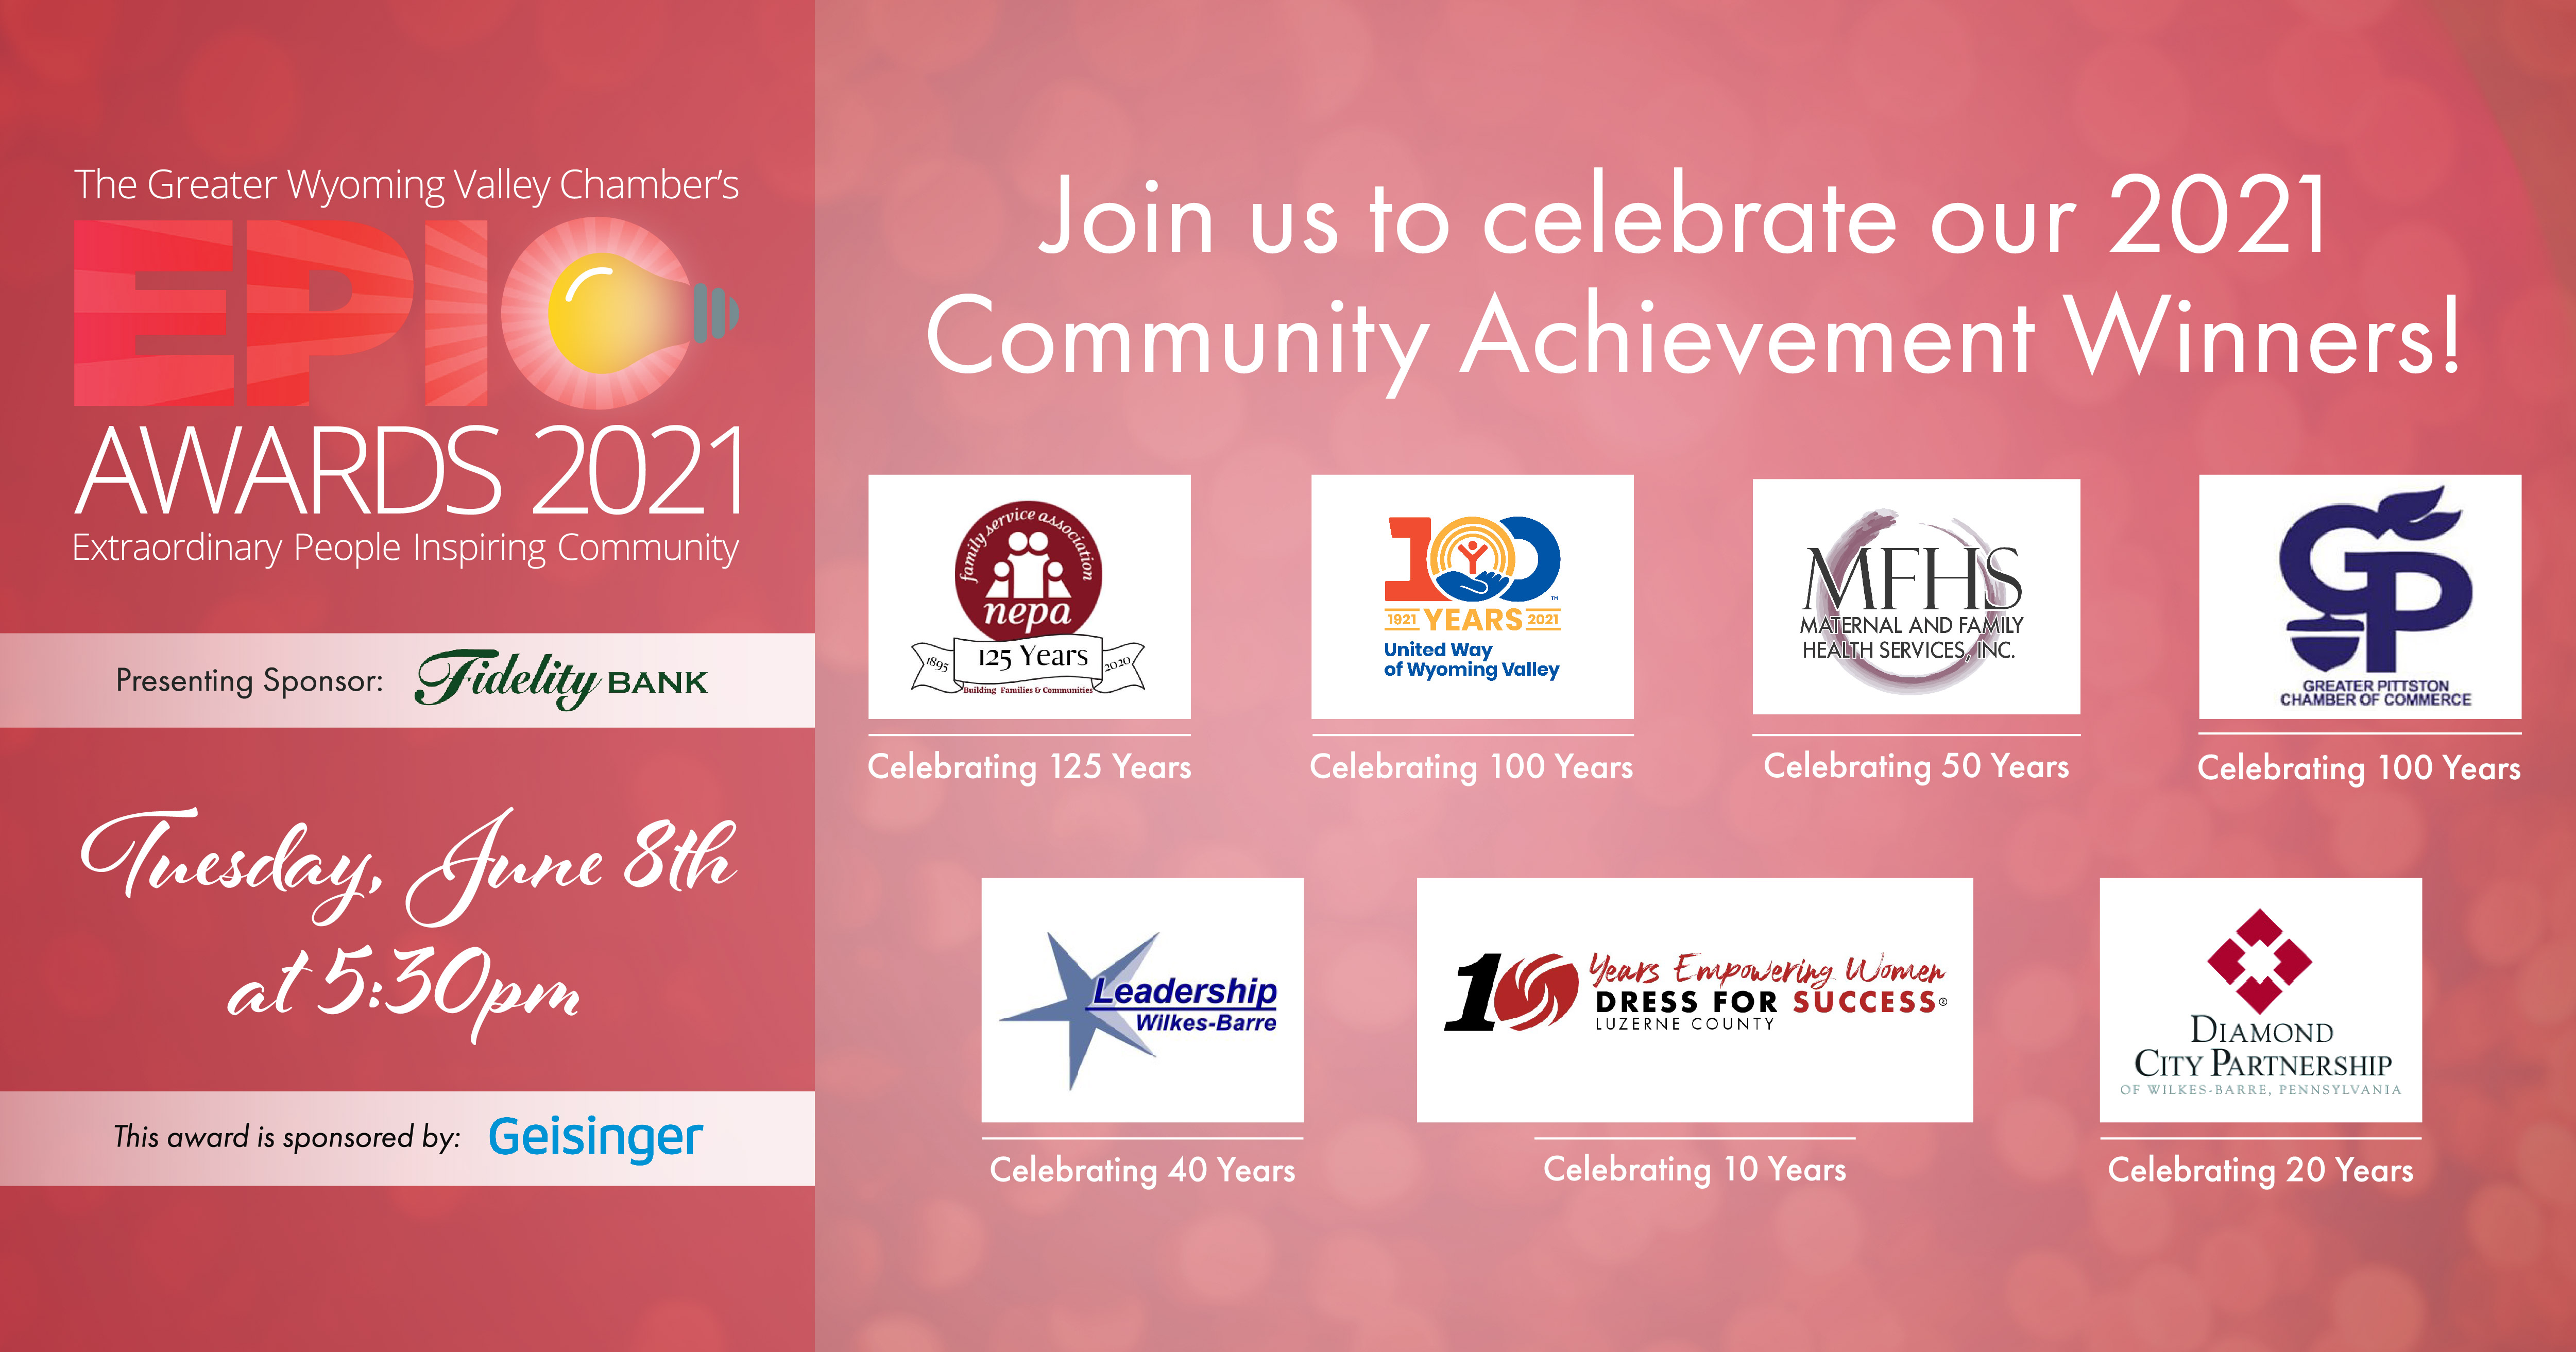 Image for Meet Our 2021 Community Celebration Award Recipients!